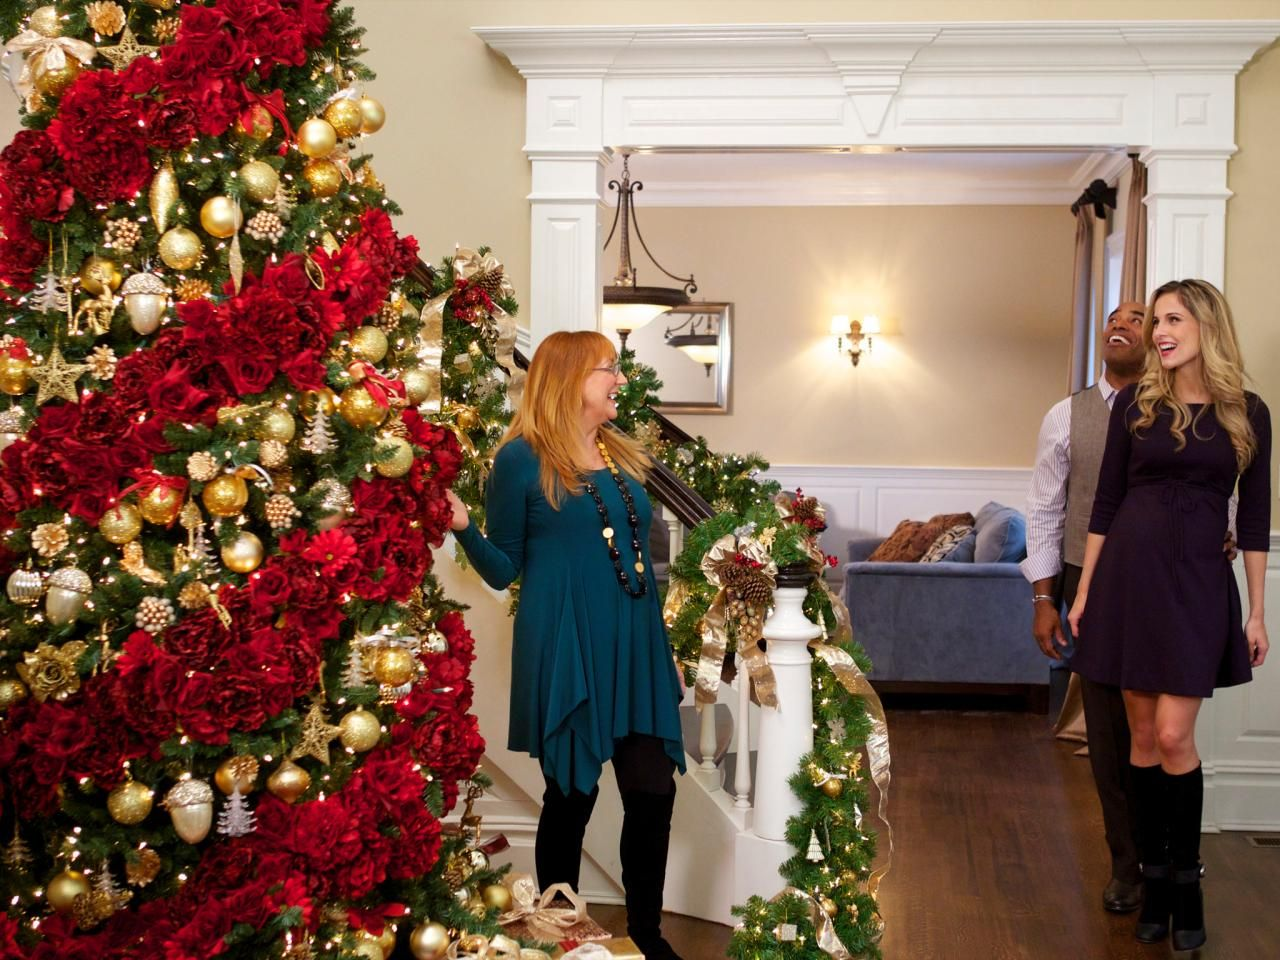 celebrity holiday homes holiday decorating and entertaining ideas how tos hgtv - Celebrities Christmas Decorated Homes